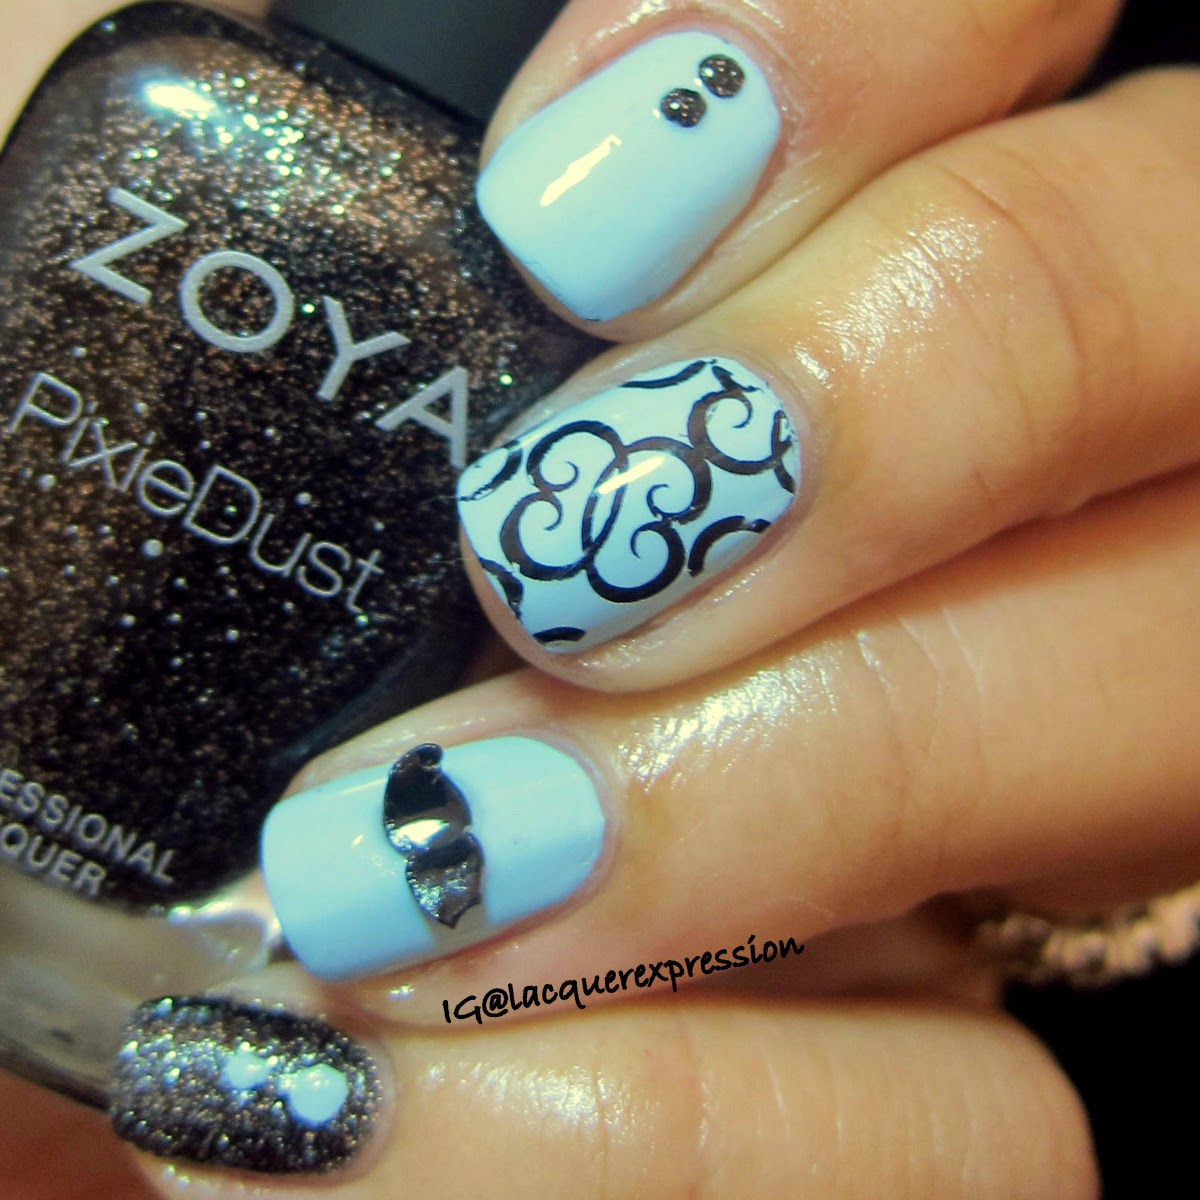 Movember mustache nail art using Dahlia by Zoya